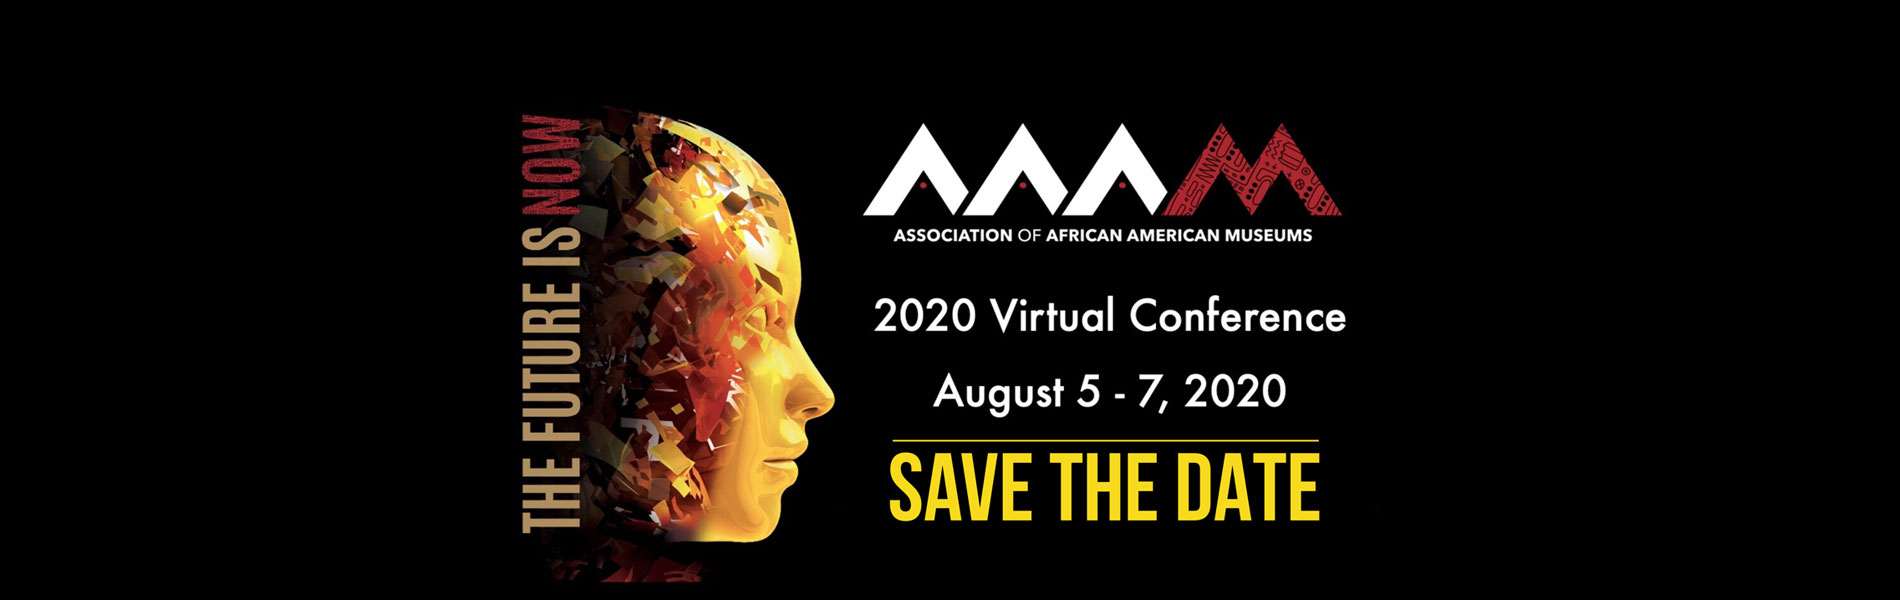 2020 AAAM Virtual Conference